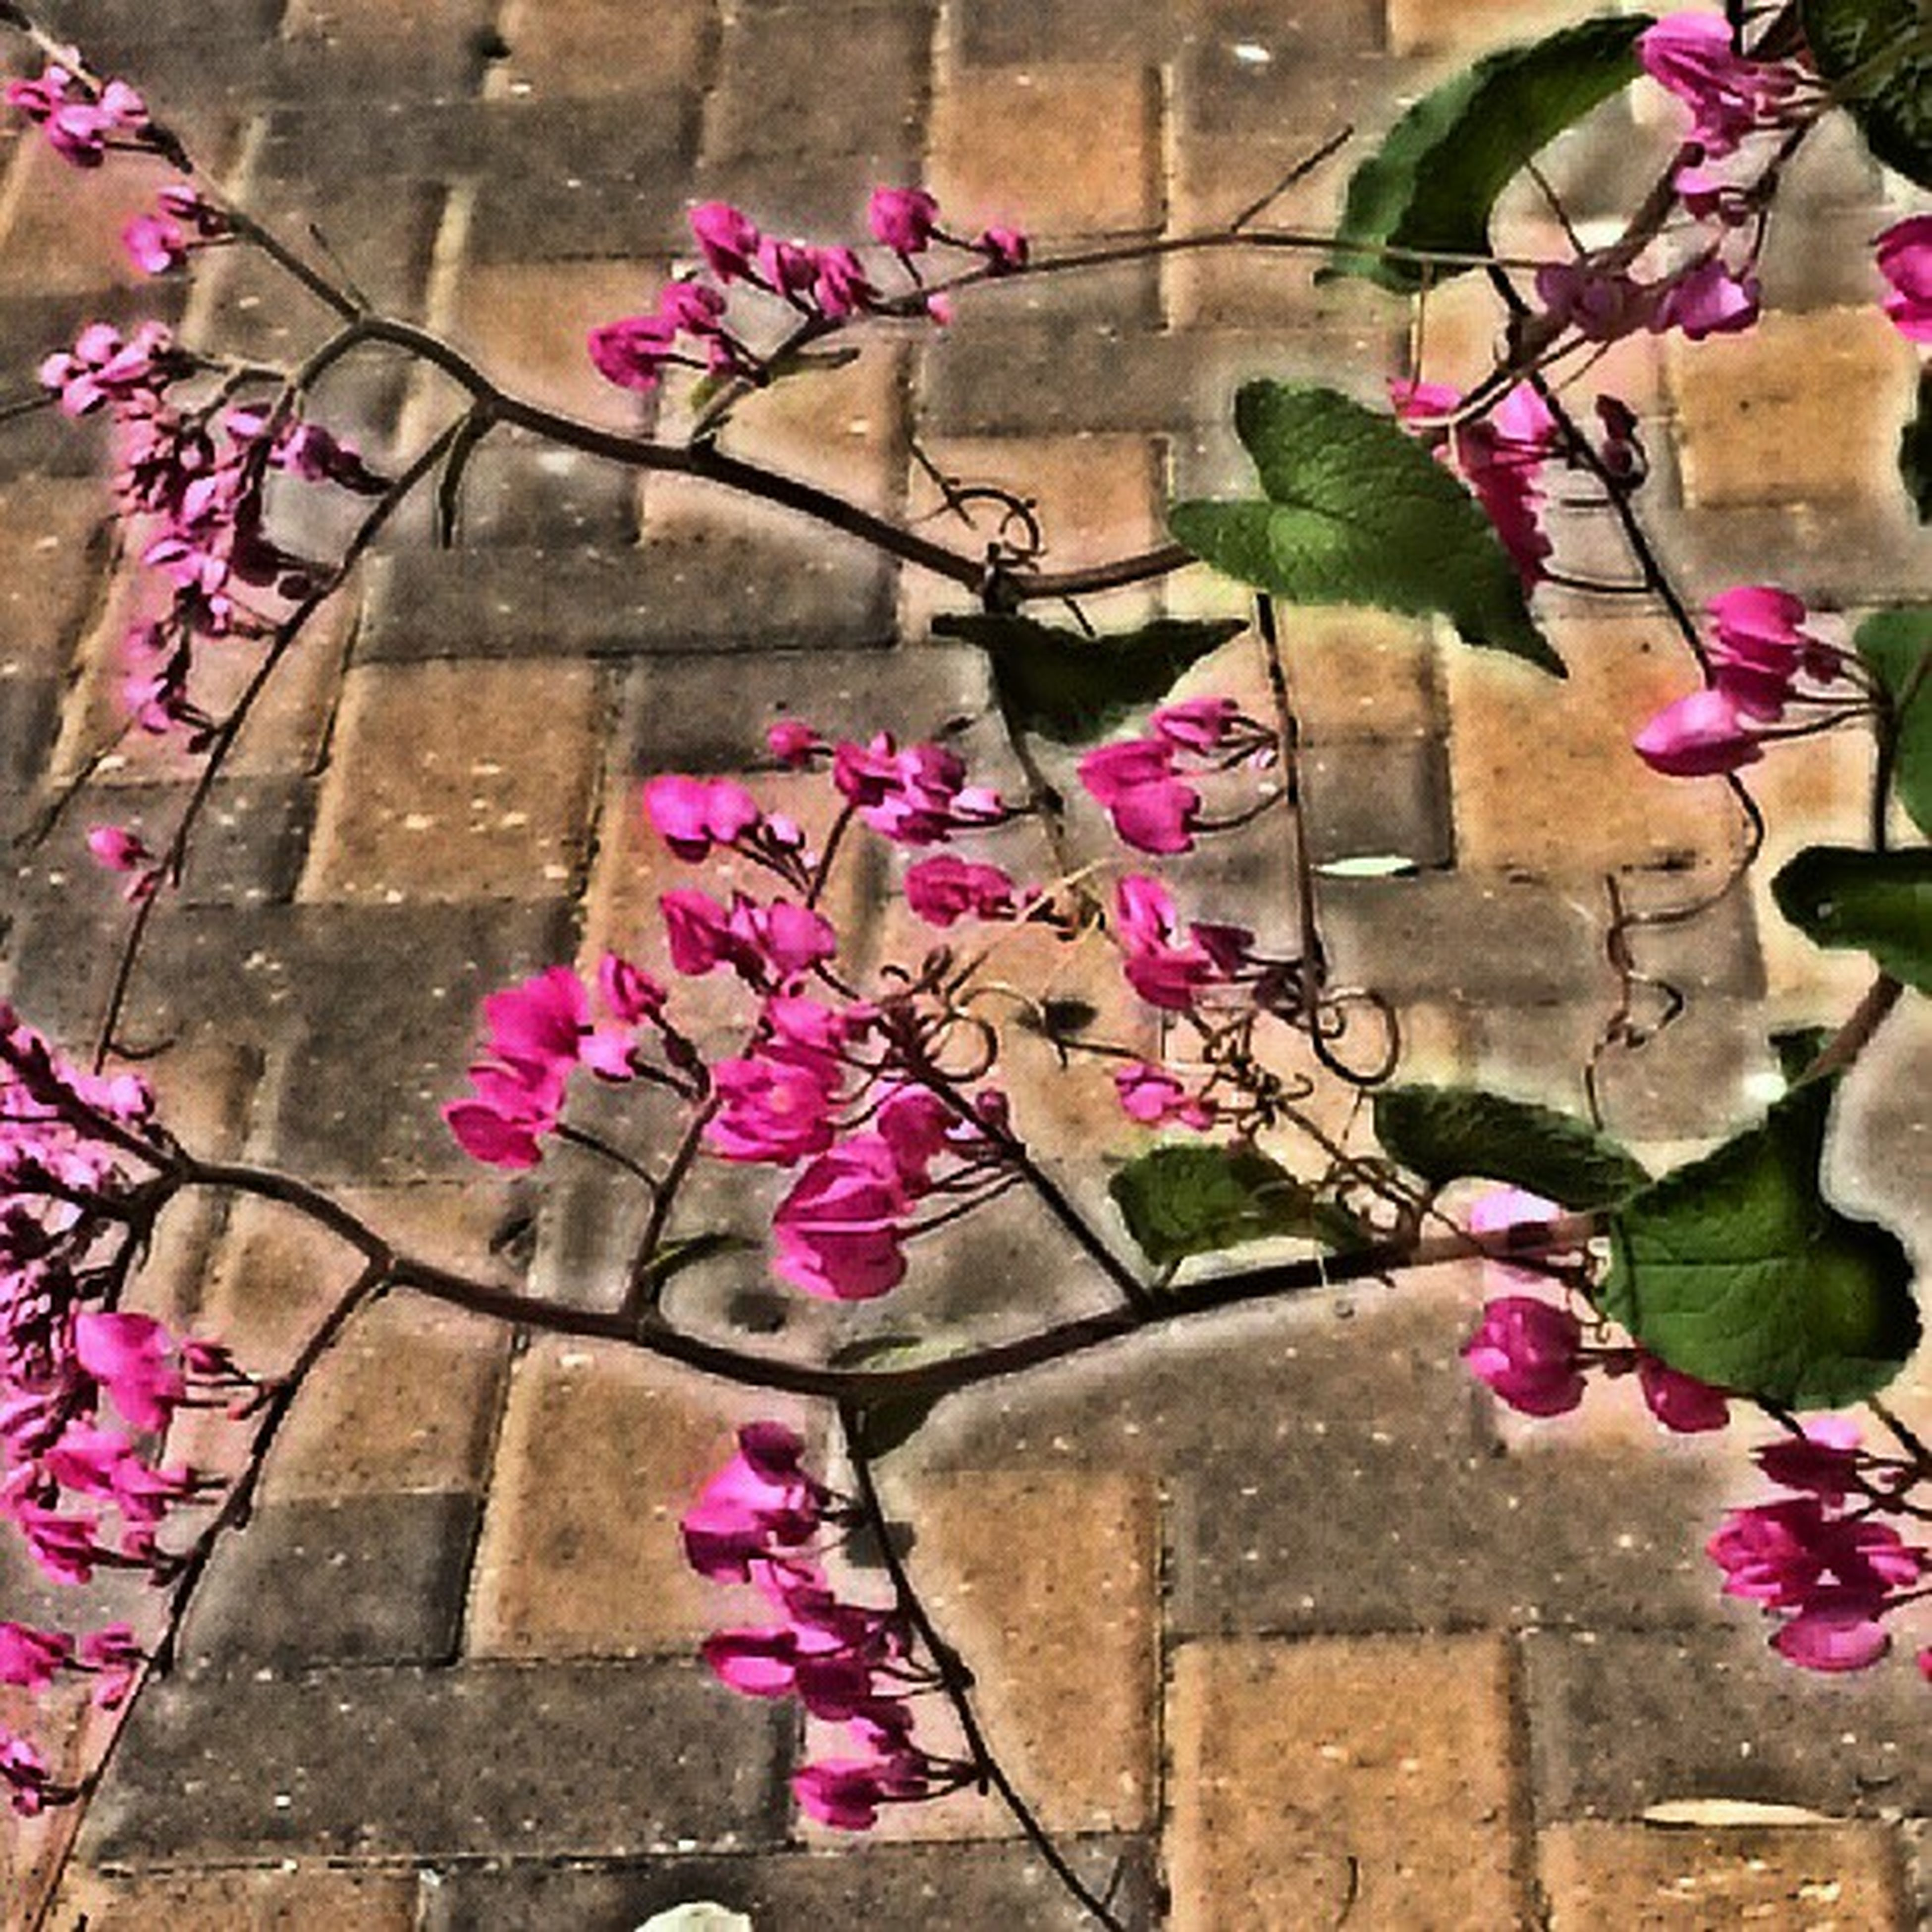 flower, pink color, fragility, freshness, wall - building feature, plant, growth, built structure, architecture, petal, building exterior, wall, brick wall, nature, blooming, leaf, beauty in nature, stone wall, in bloom, purple